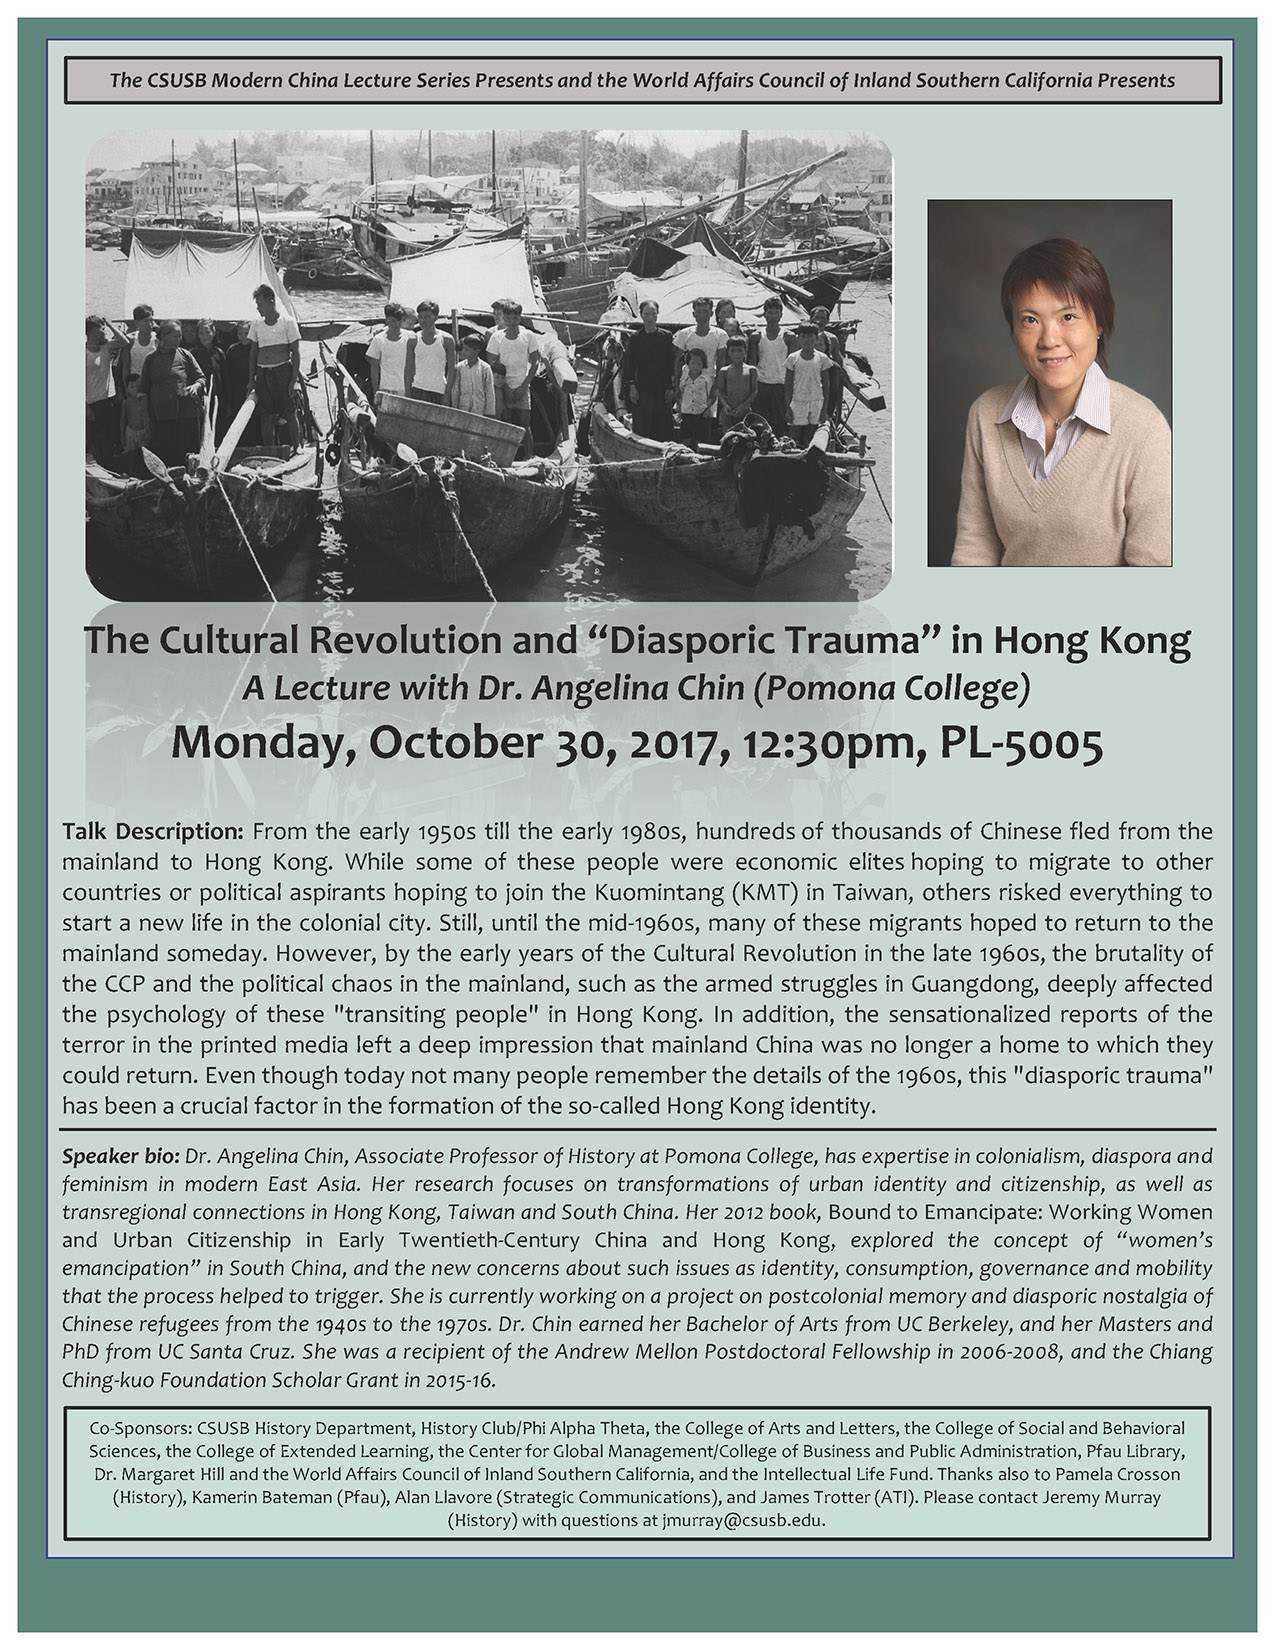 """""""The Cultural Revolution and 'Diasporic Trauma' in Hong Kong,"""" by Angelina Chin, associate professor of history at Pomona College, will take place at 12:30 p.m. Monday, Oct. 30, at the John M. Pfau Library, PL-5005."""